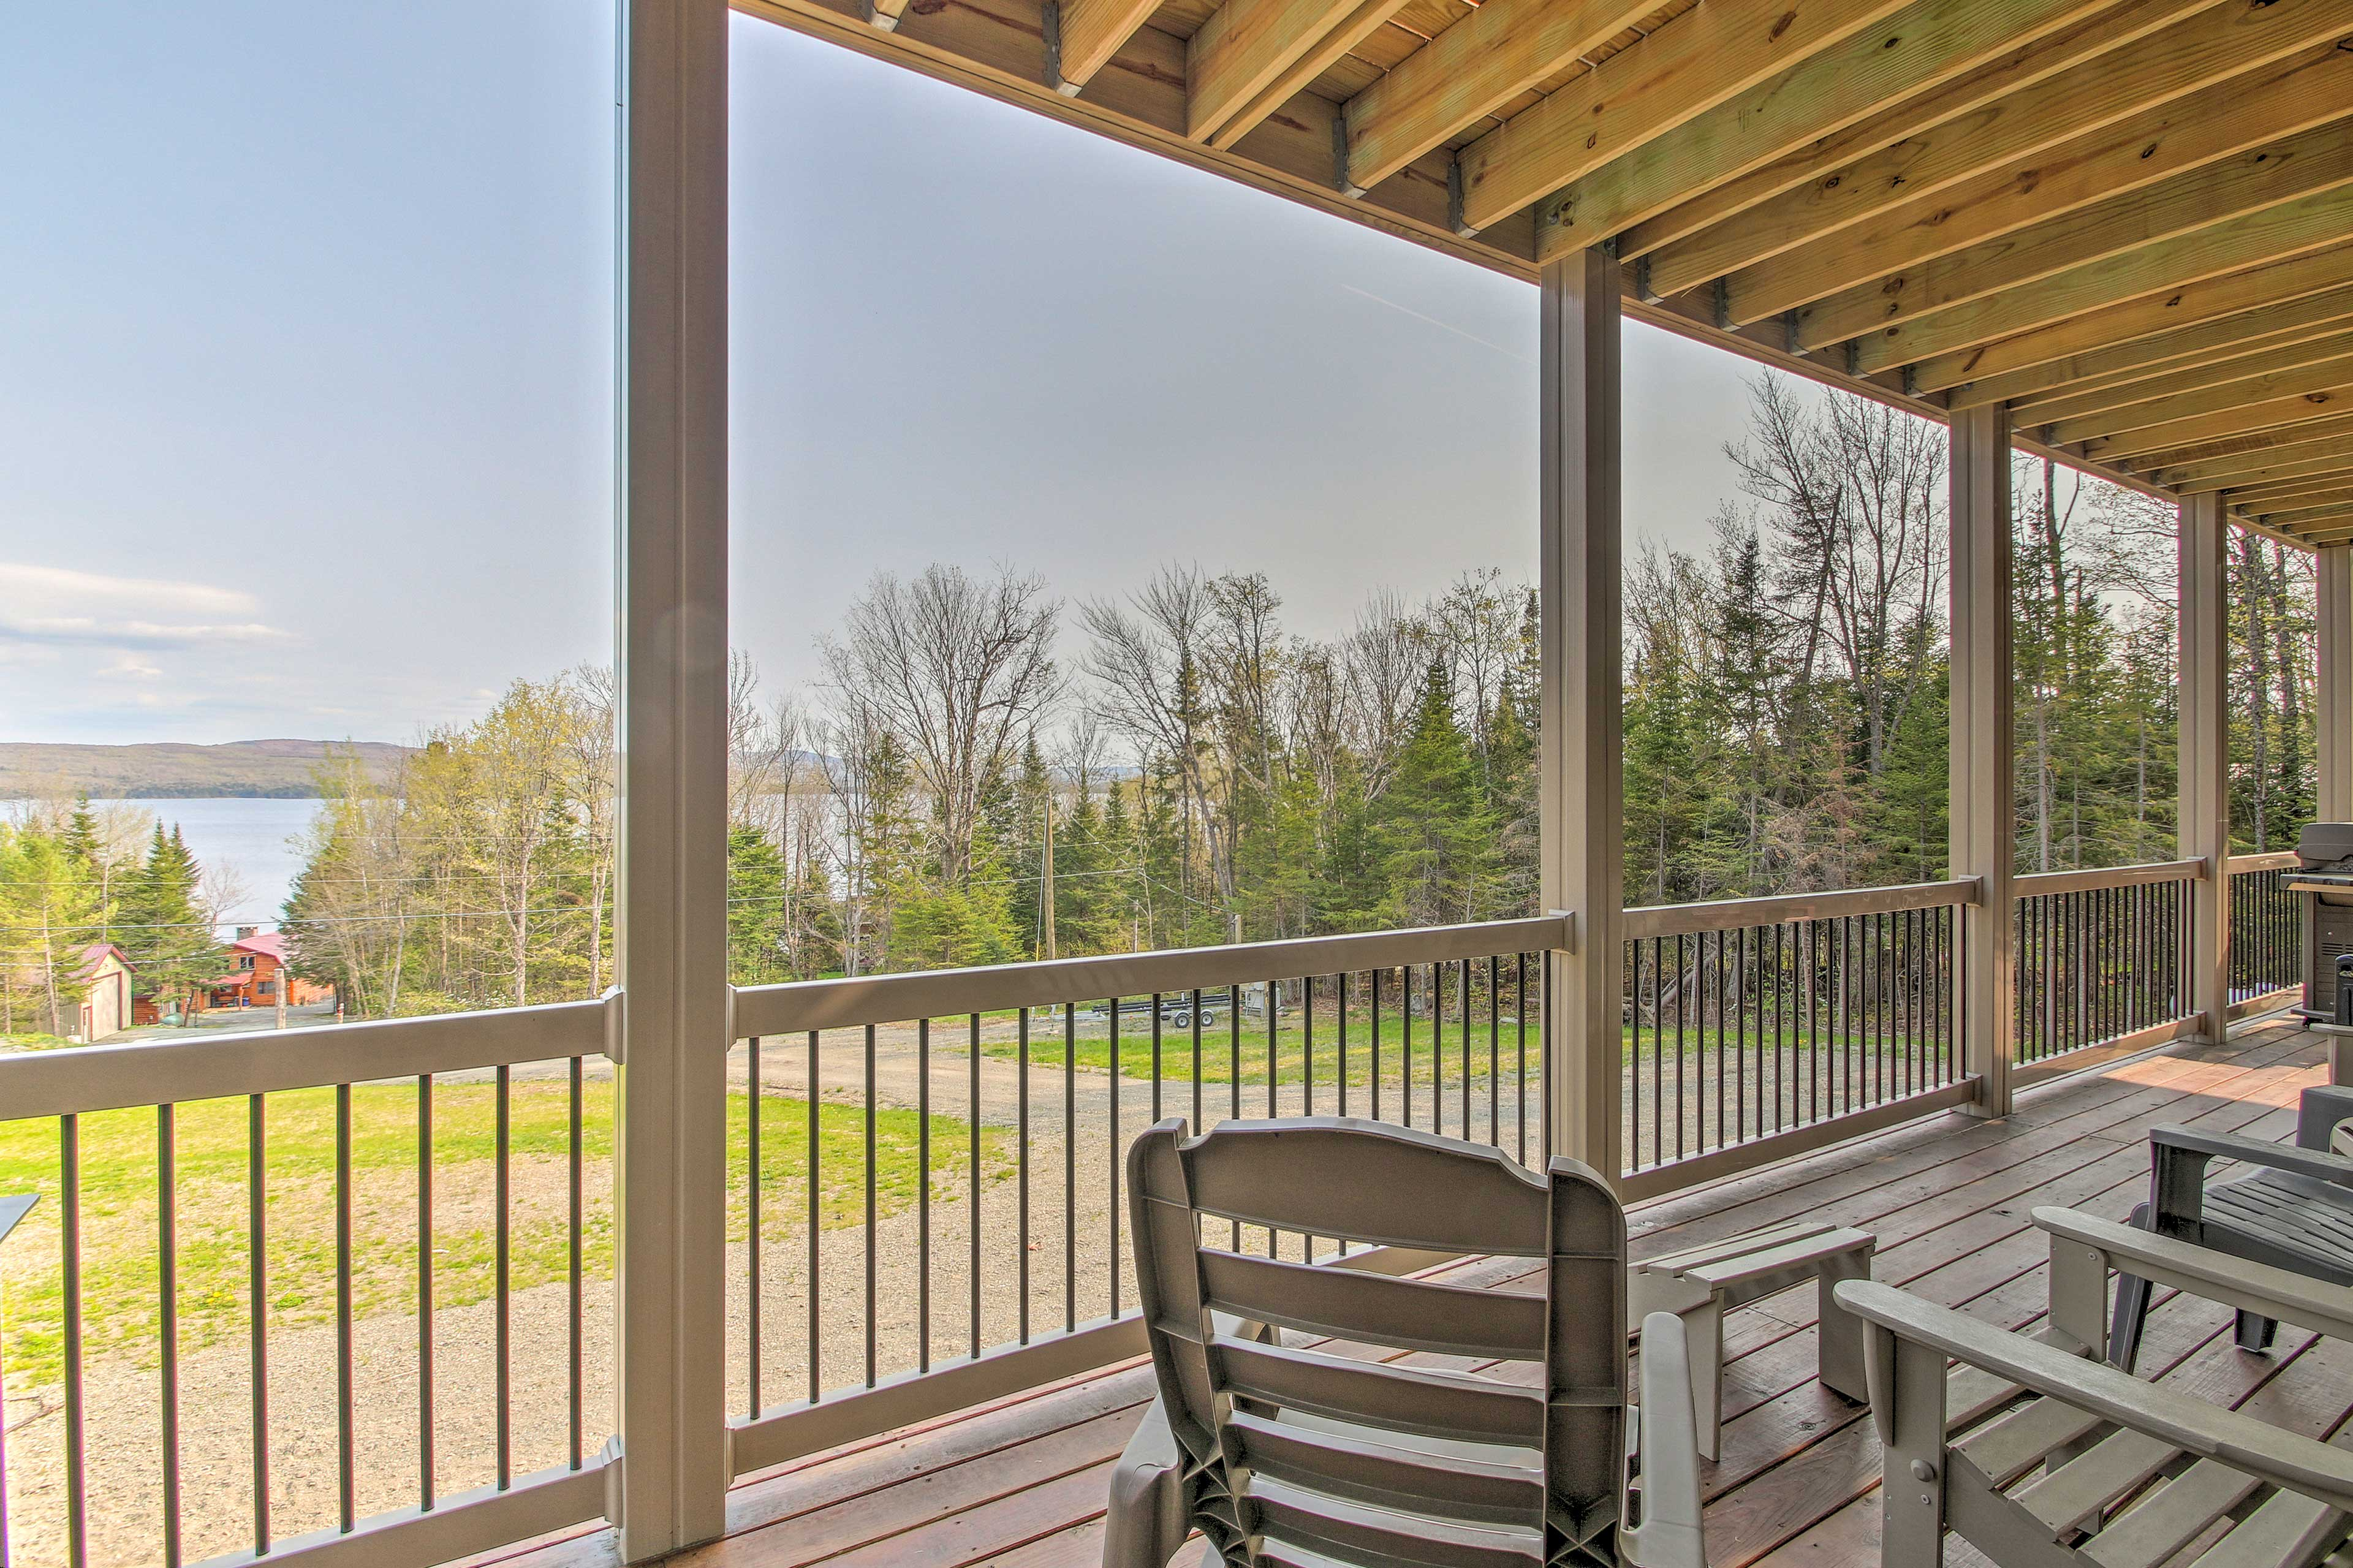 Check out the view from the private deck.